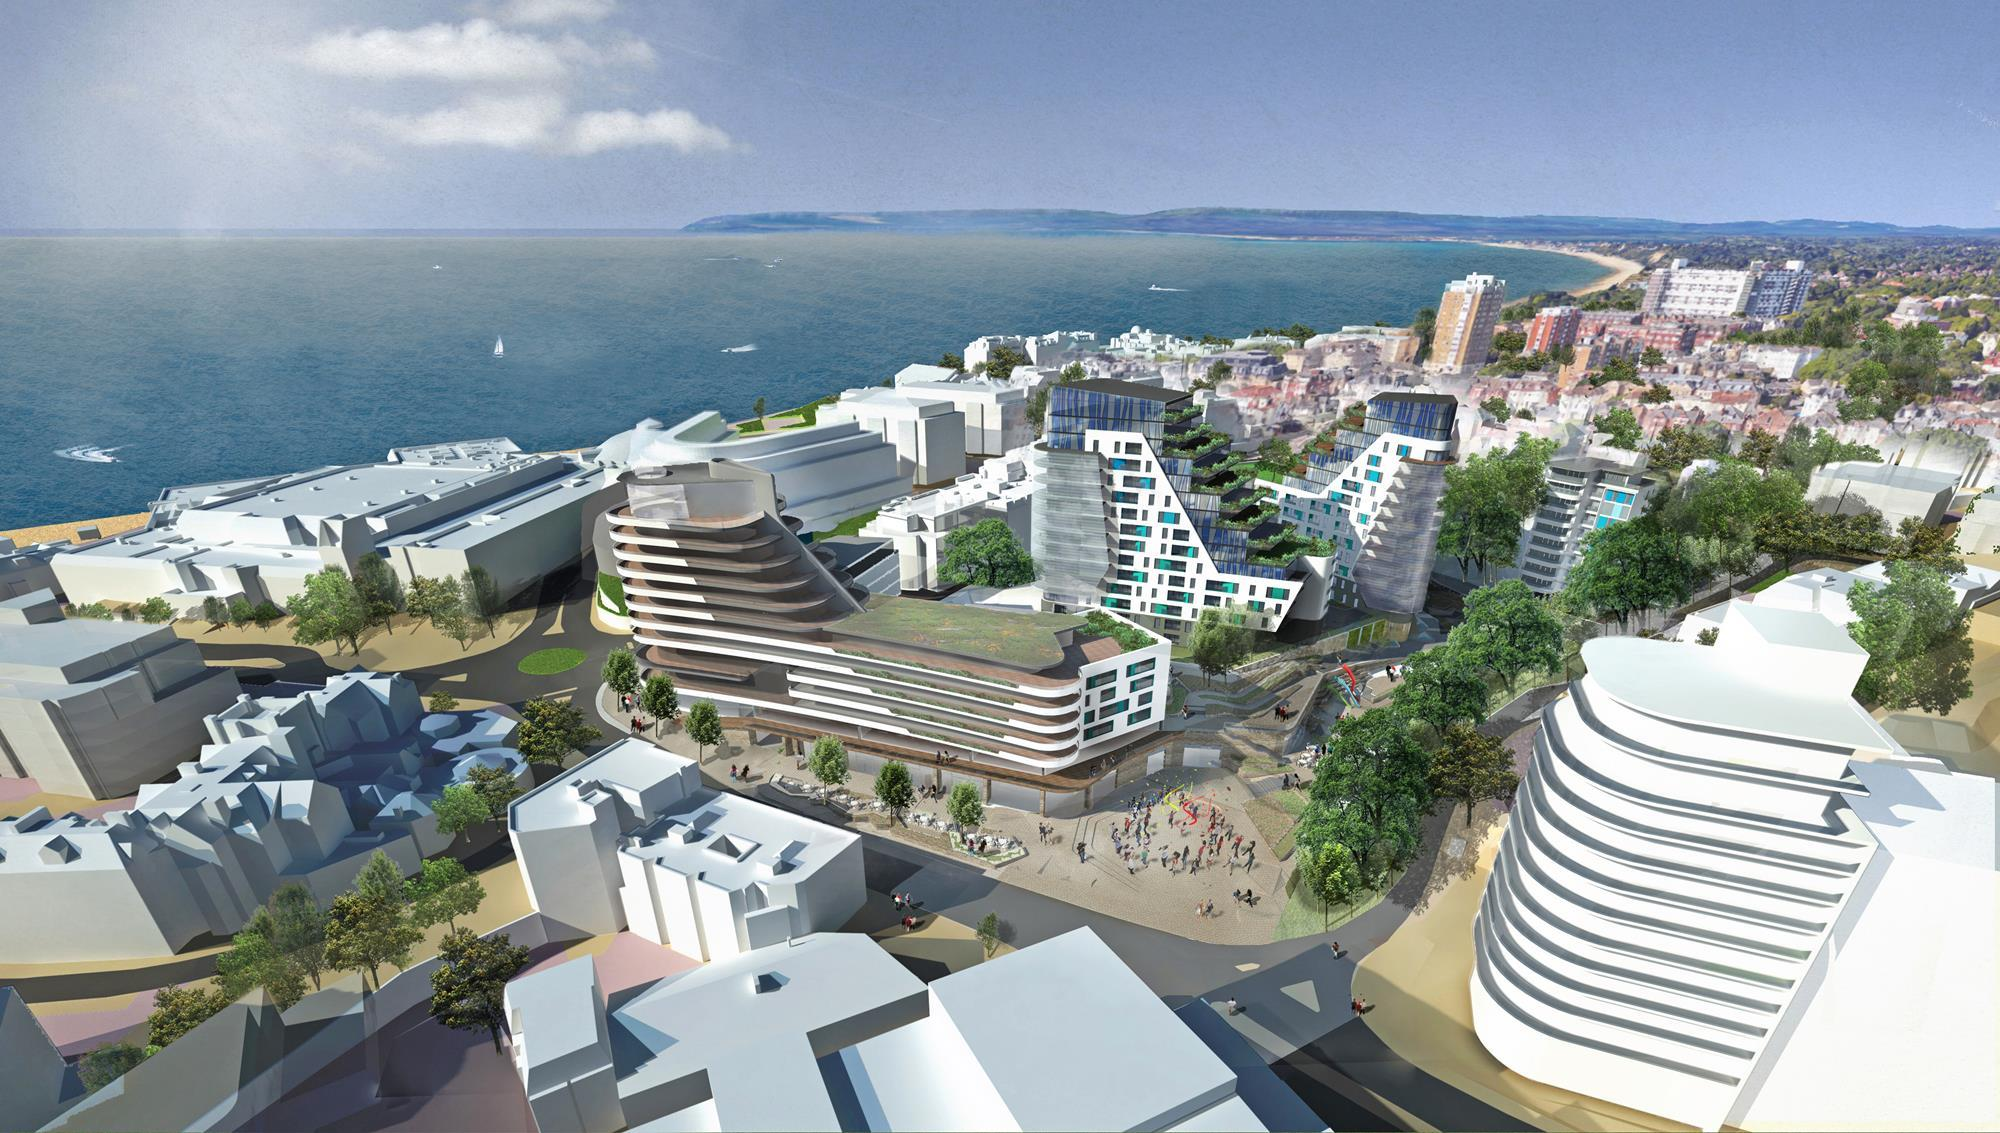 bournemouth unveils winter gardens plan news building design